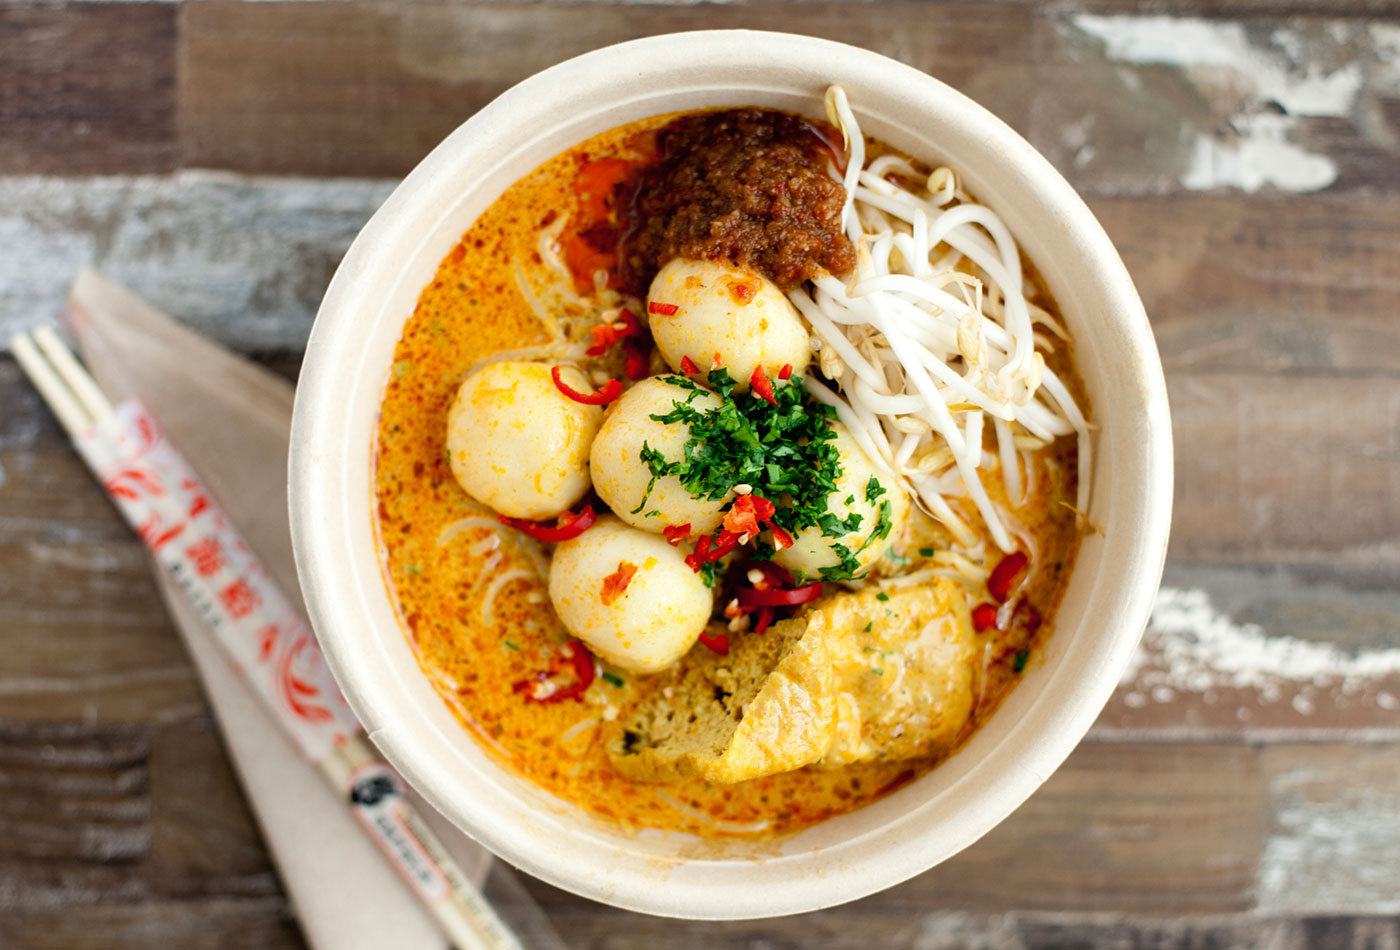 Bang Luck Thai Street Food, Spice Alley